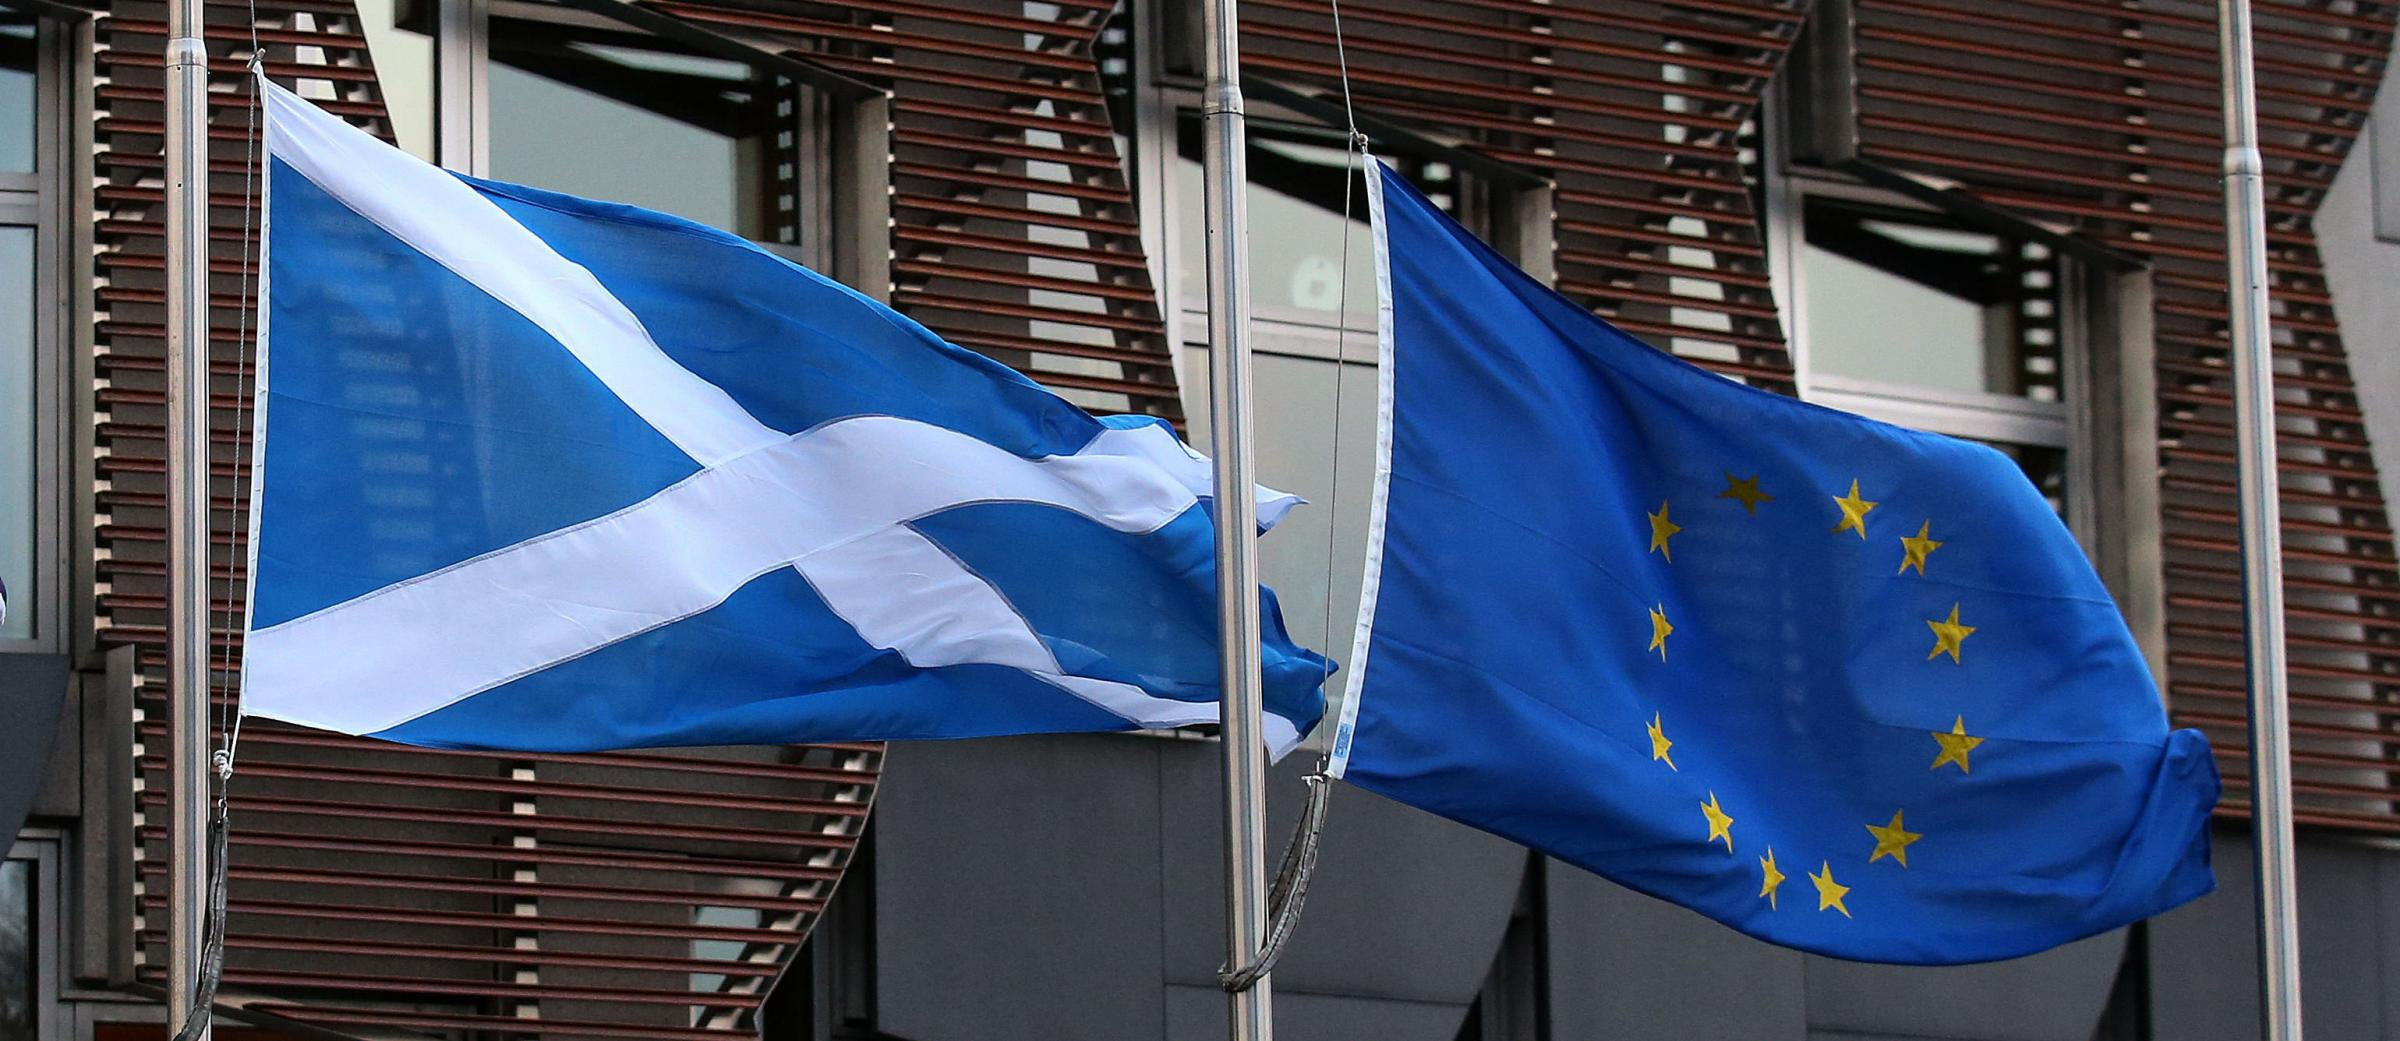 Pete Wishart believes a gradual approach is the best hope for Scottish EU membership. Photograph: PA